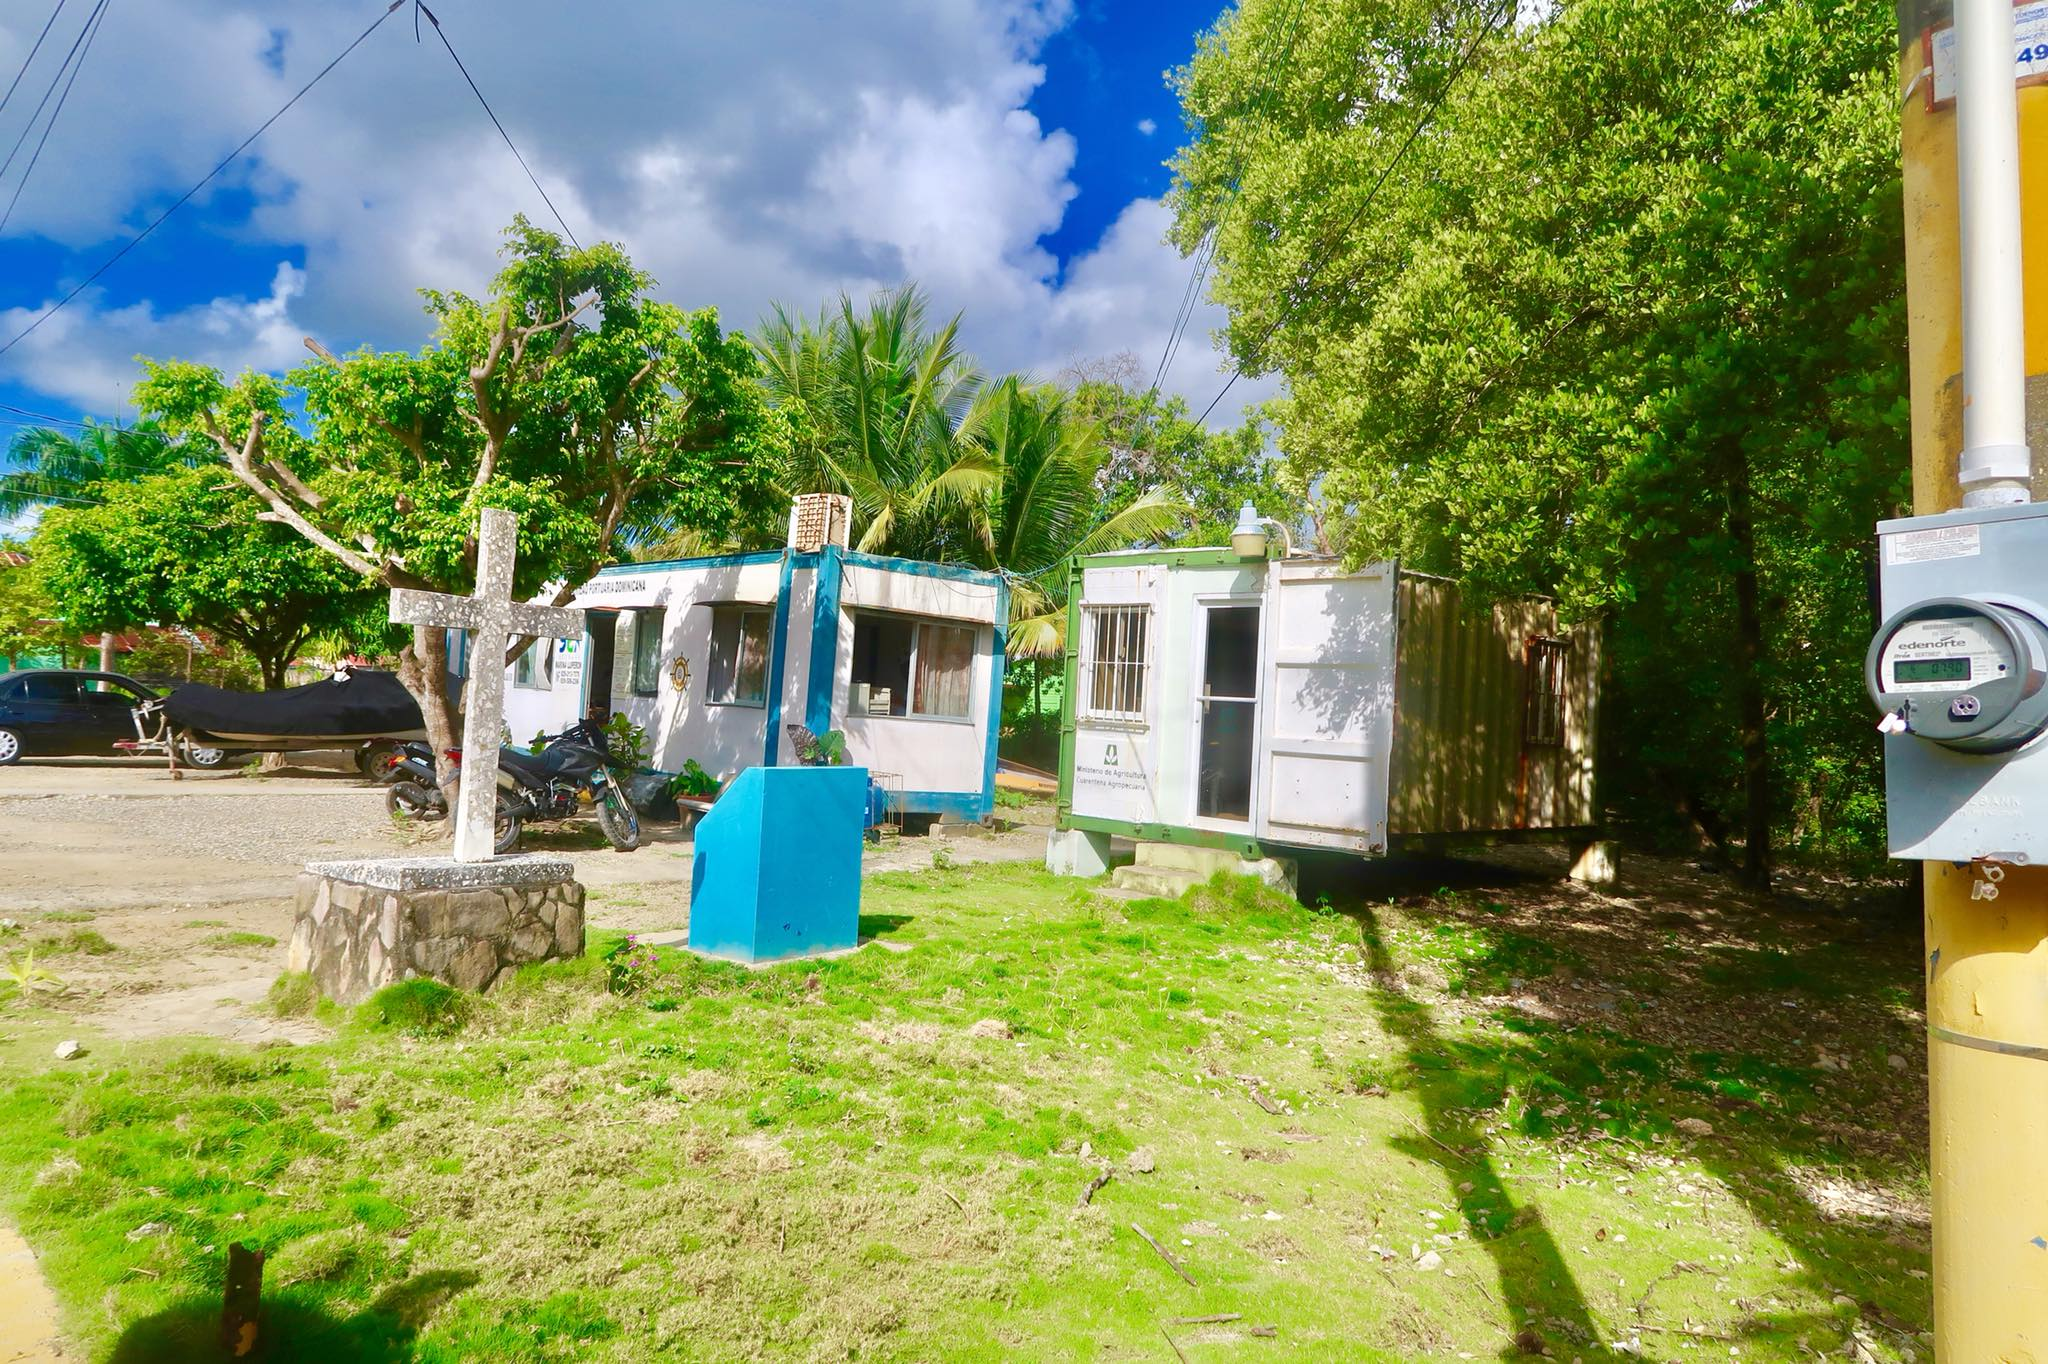 Sailing Day 47 and 48: Overnight Anchoring in Big Sand Cay Turks & Caicos and 80 NM overnight sailing passage to Luperon, Dominican Republic!